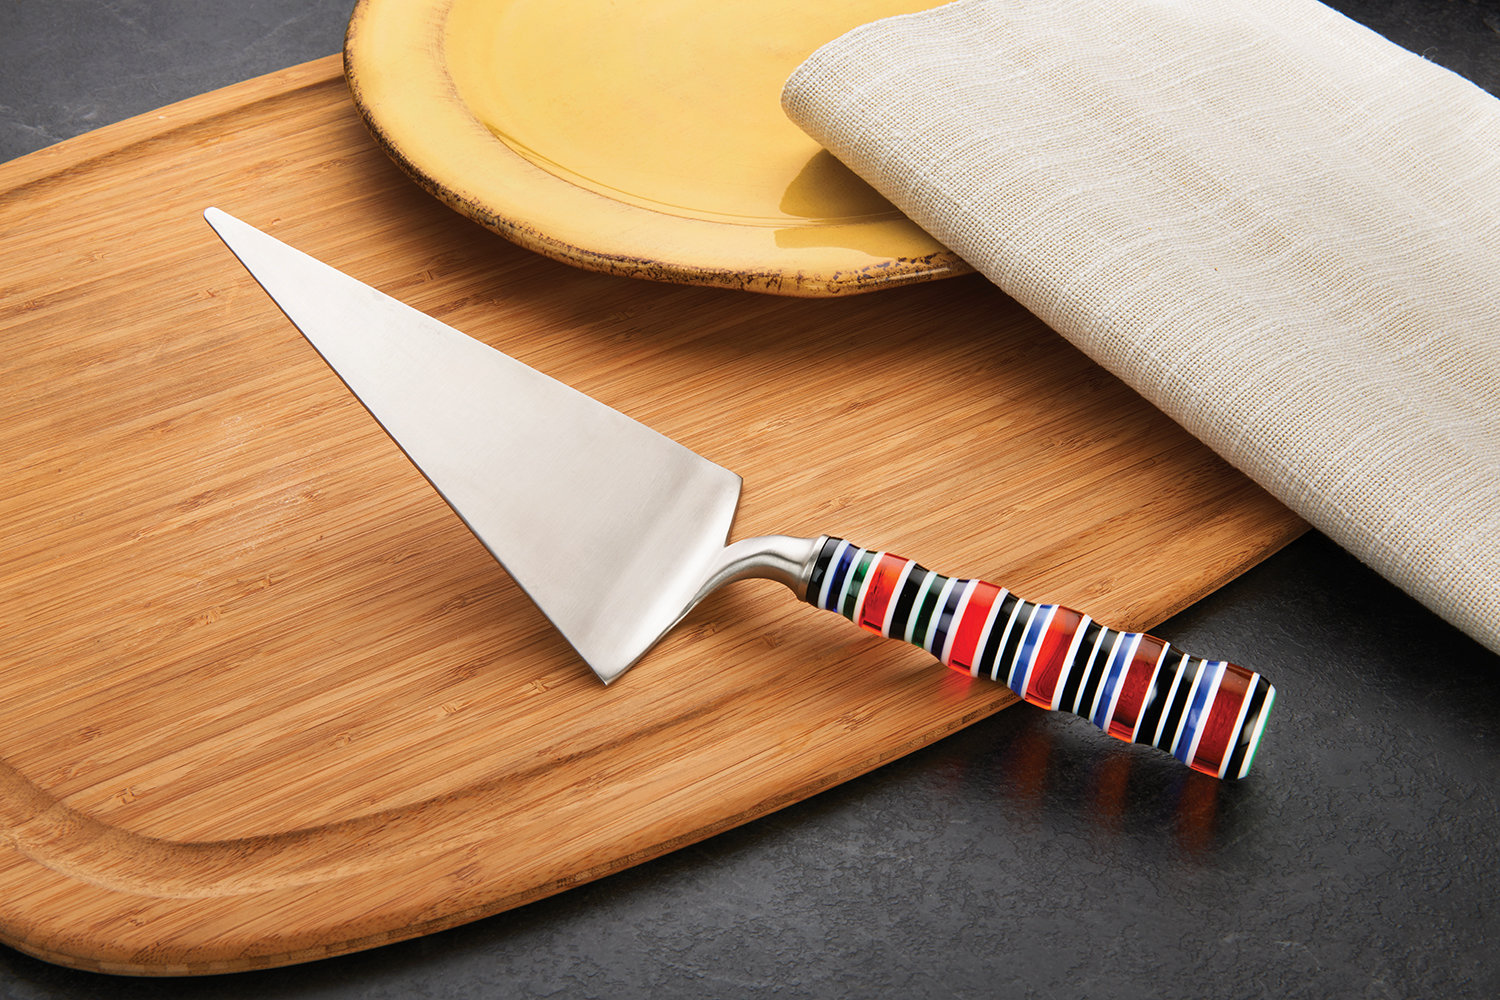 WoodRiver Stainles Steel Pizza Server